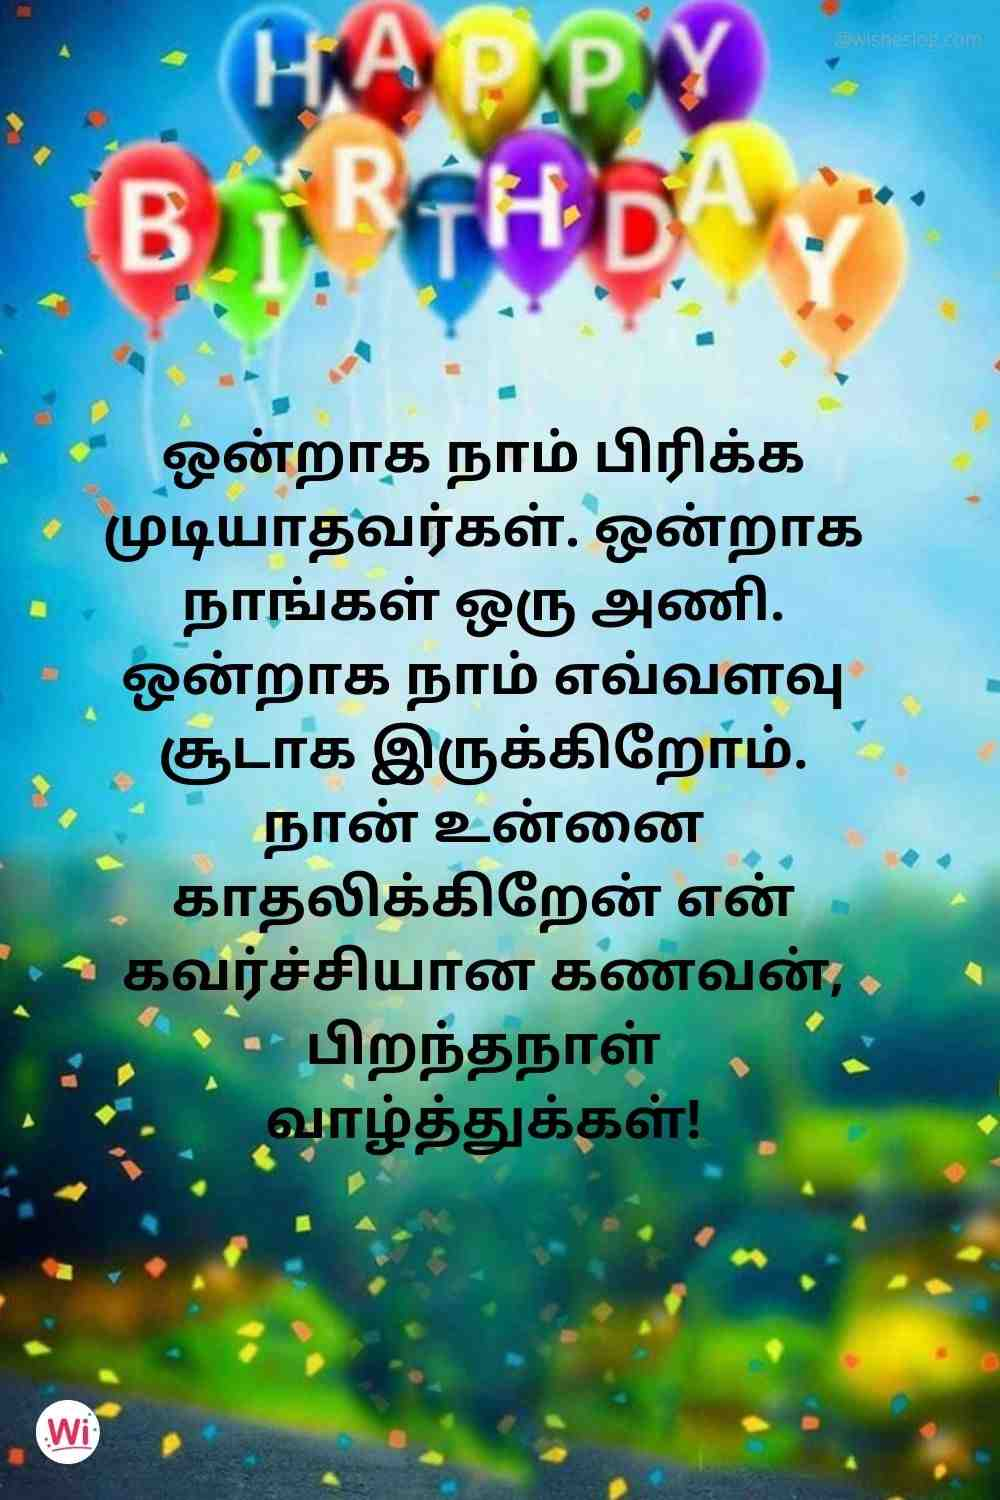 birthday wishes for hubby in tamil